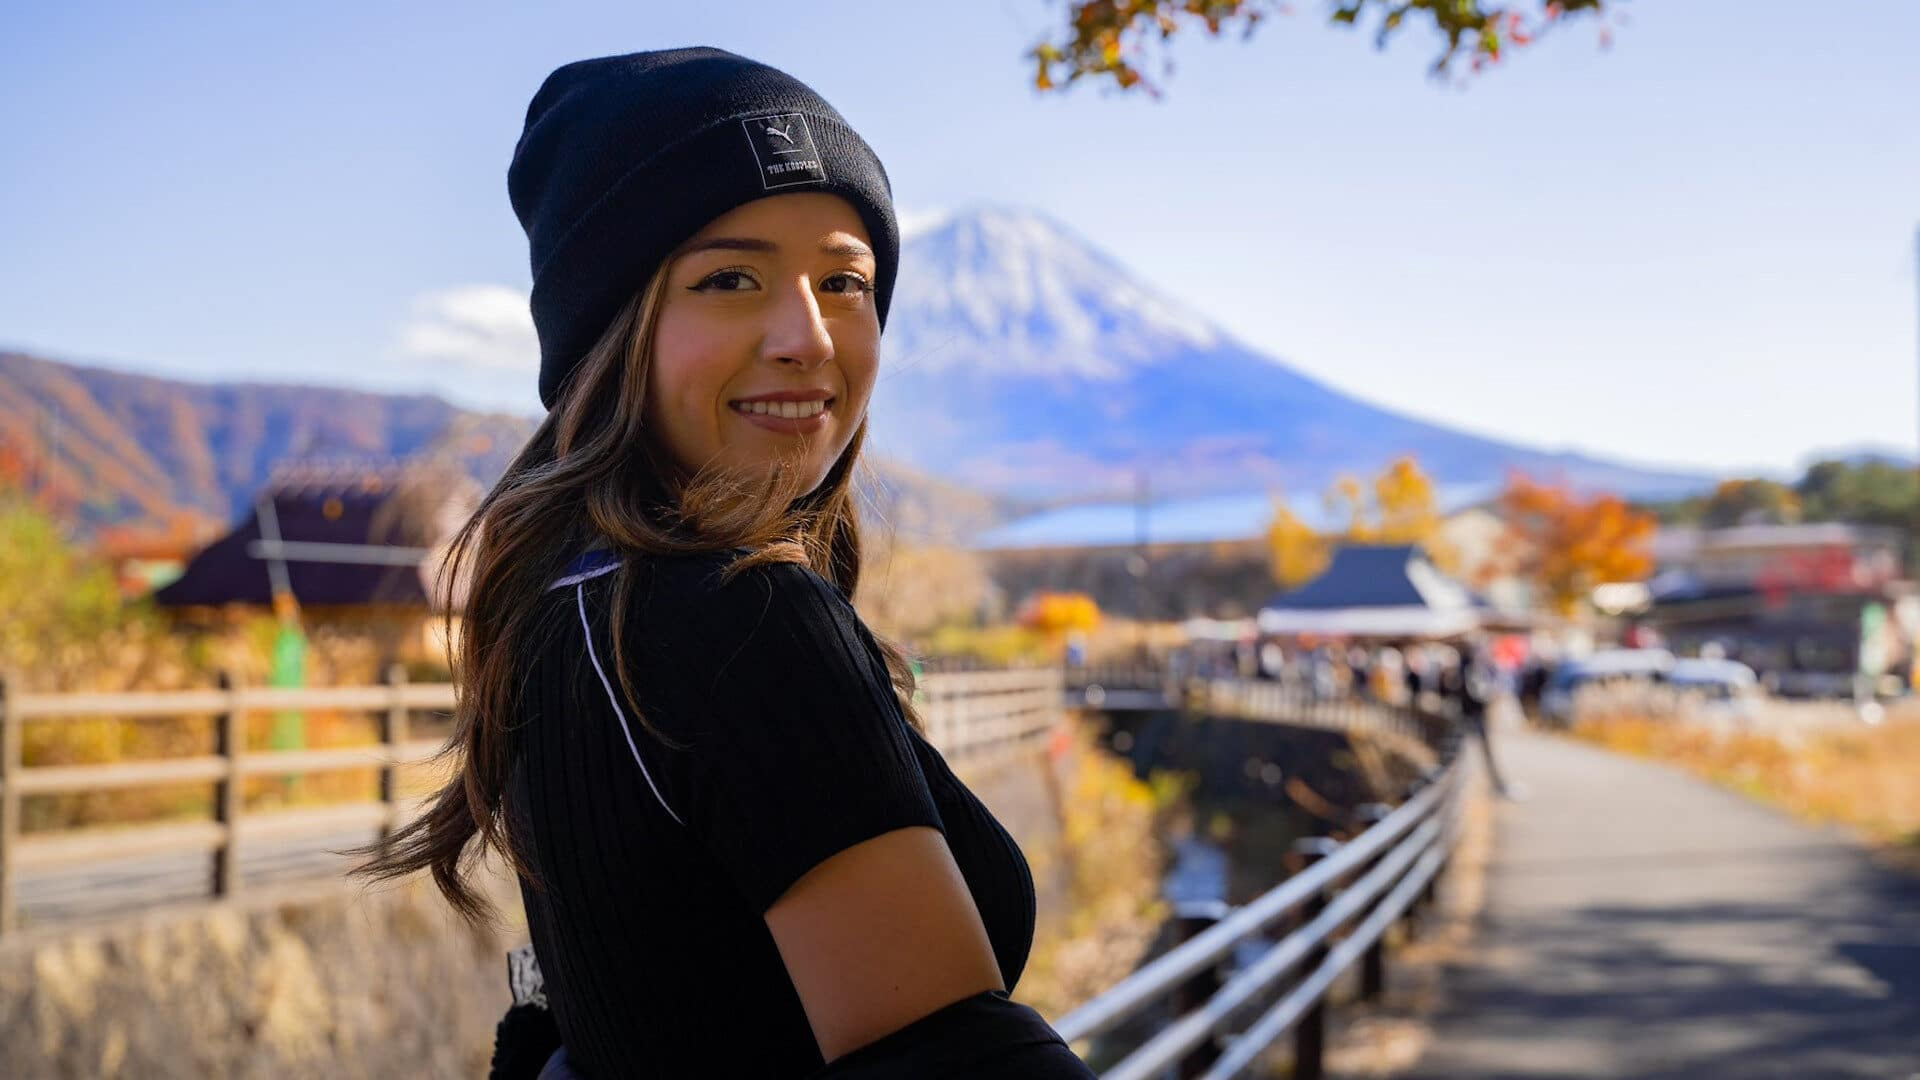 Who is Pokimane? Net worth, earnings, streaming setup, and more | The Loadout